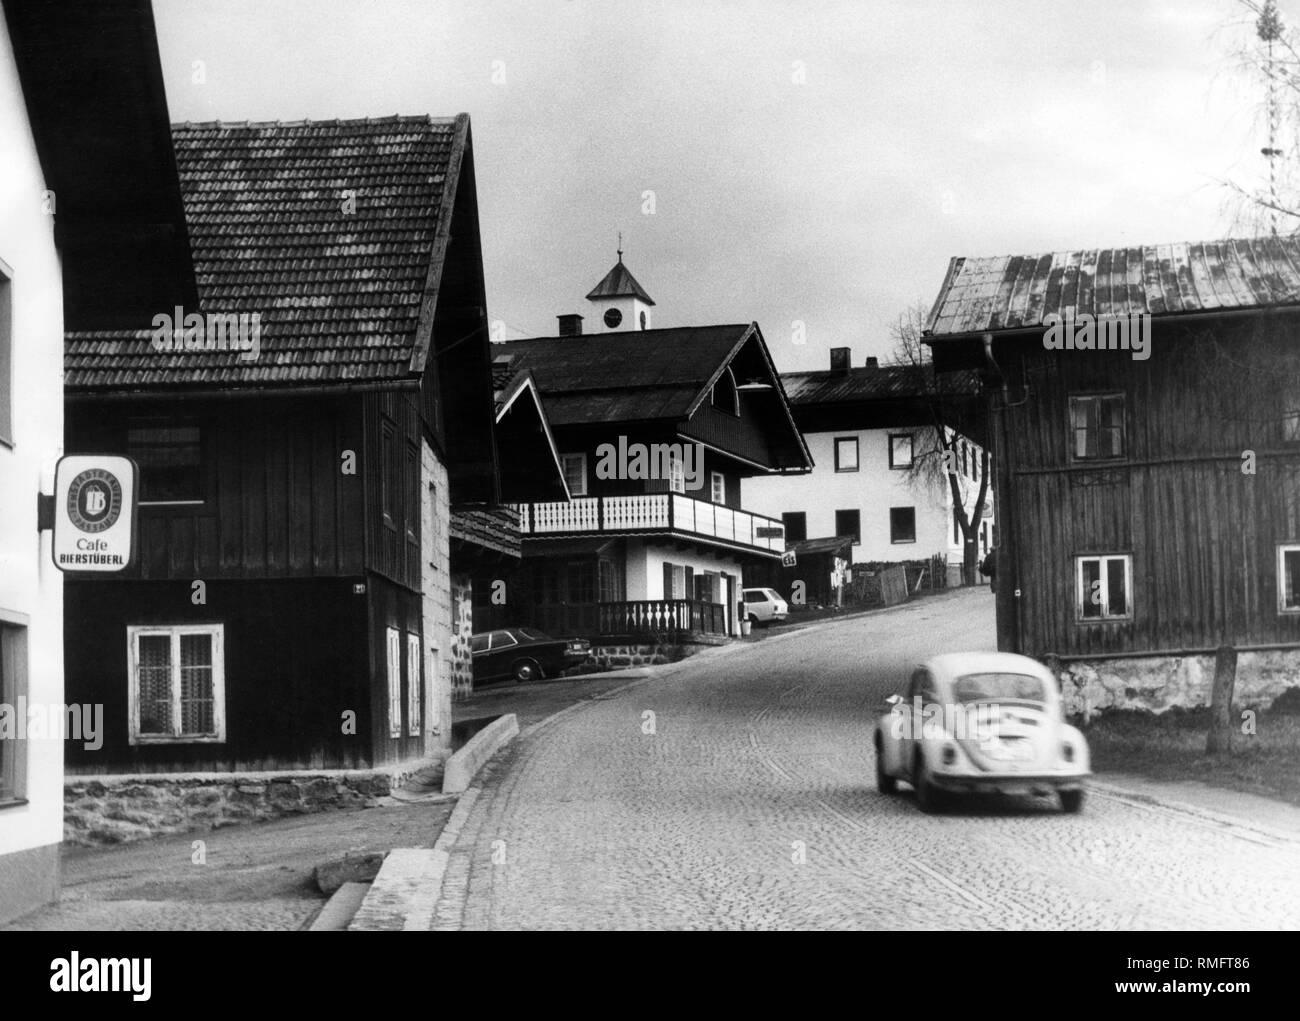 A VW Beetle drives on a street in Mauth (undated shot). - Stock Image